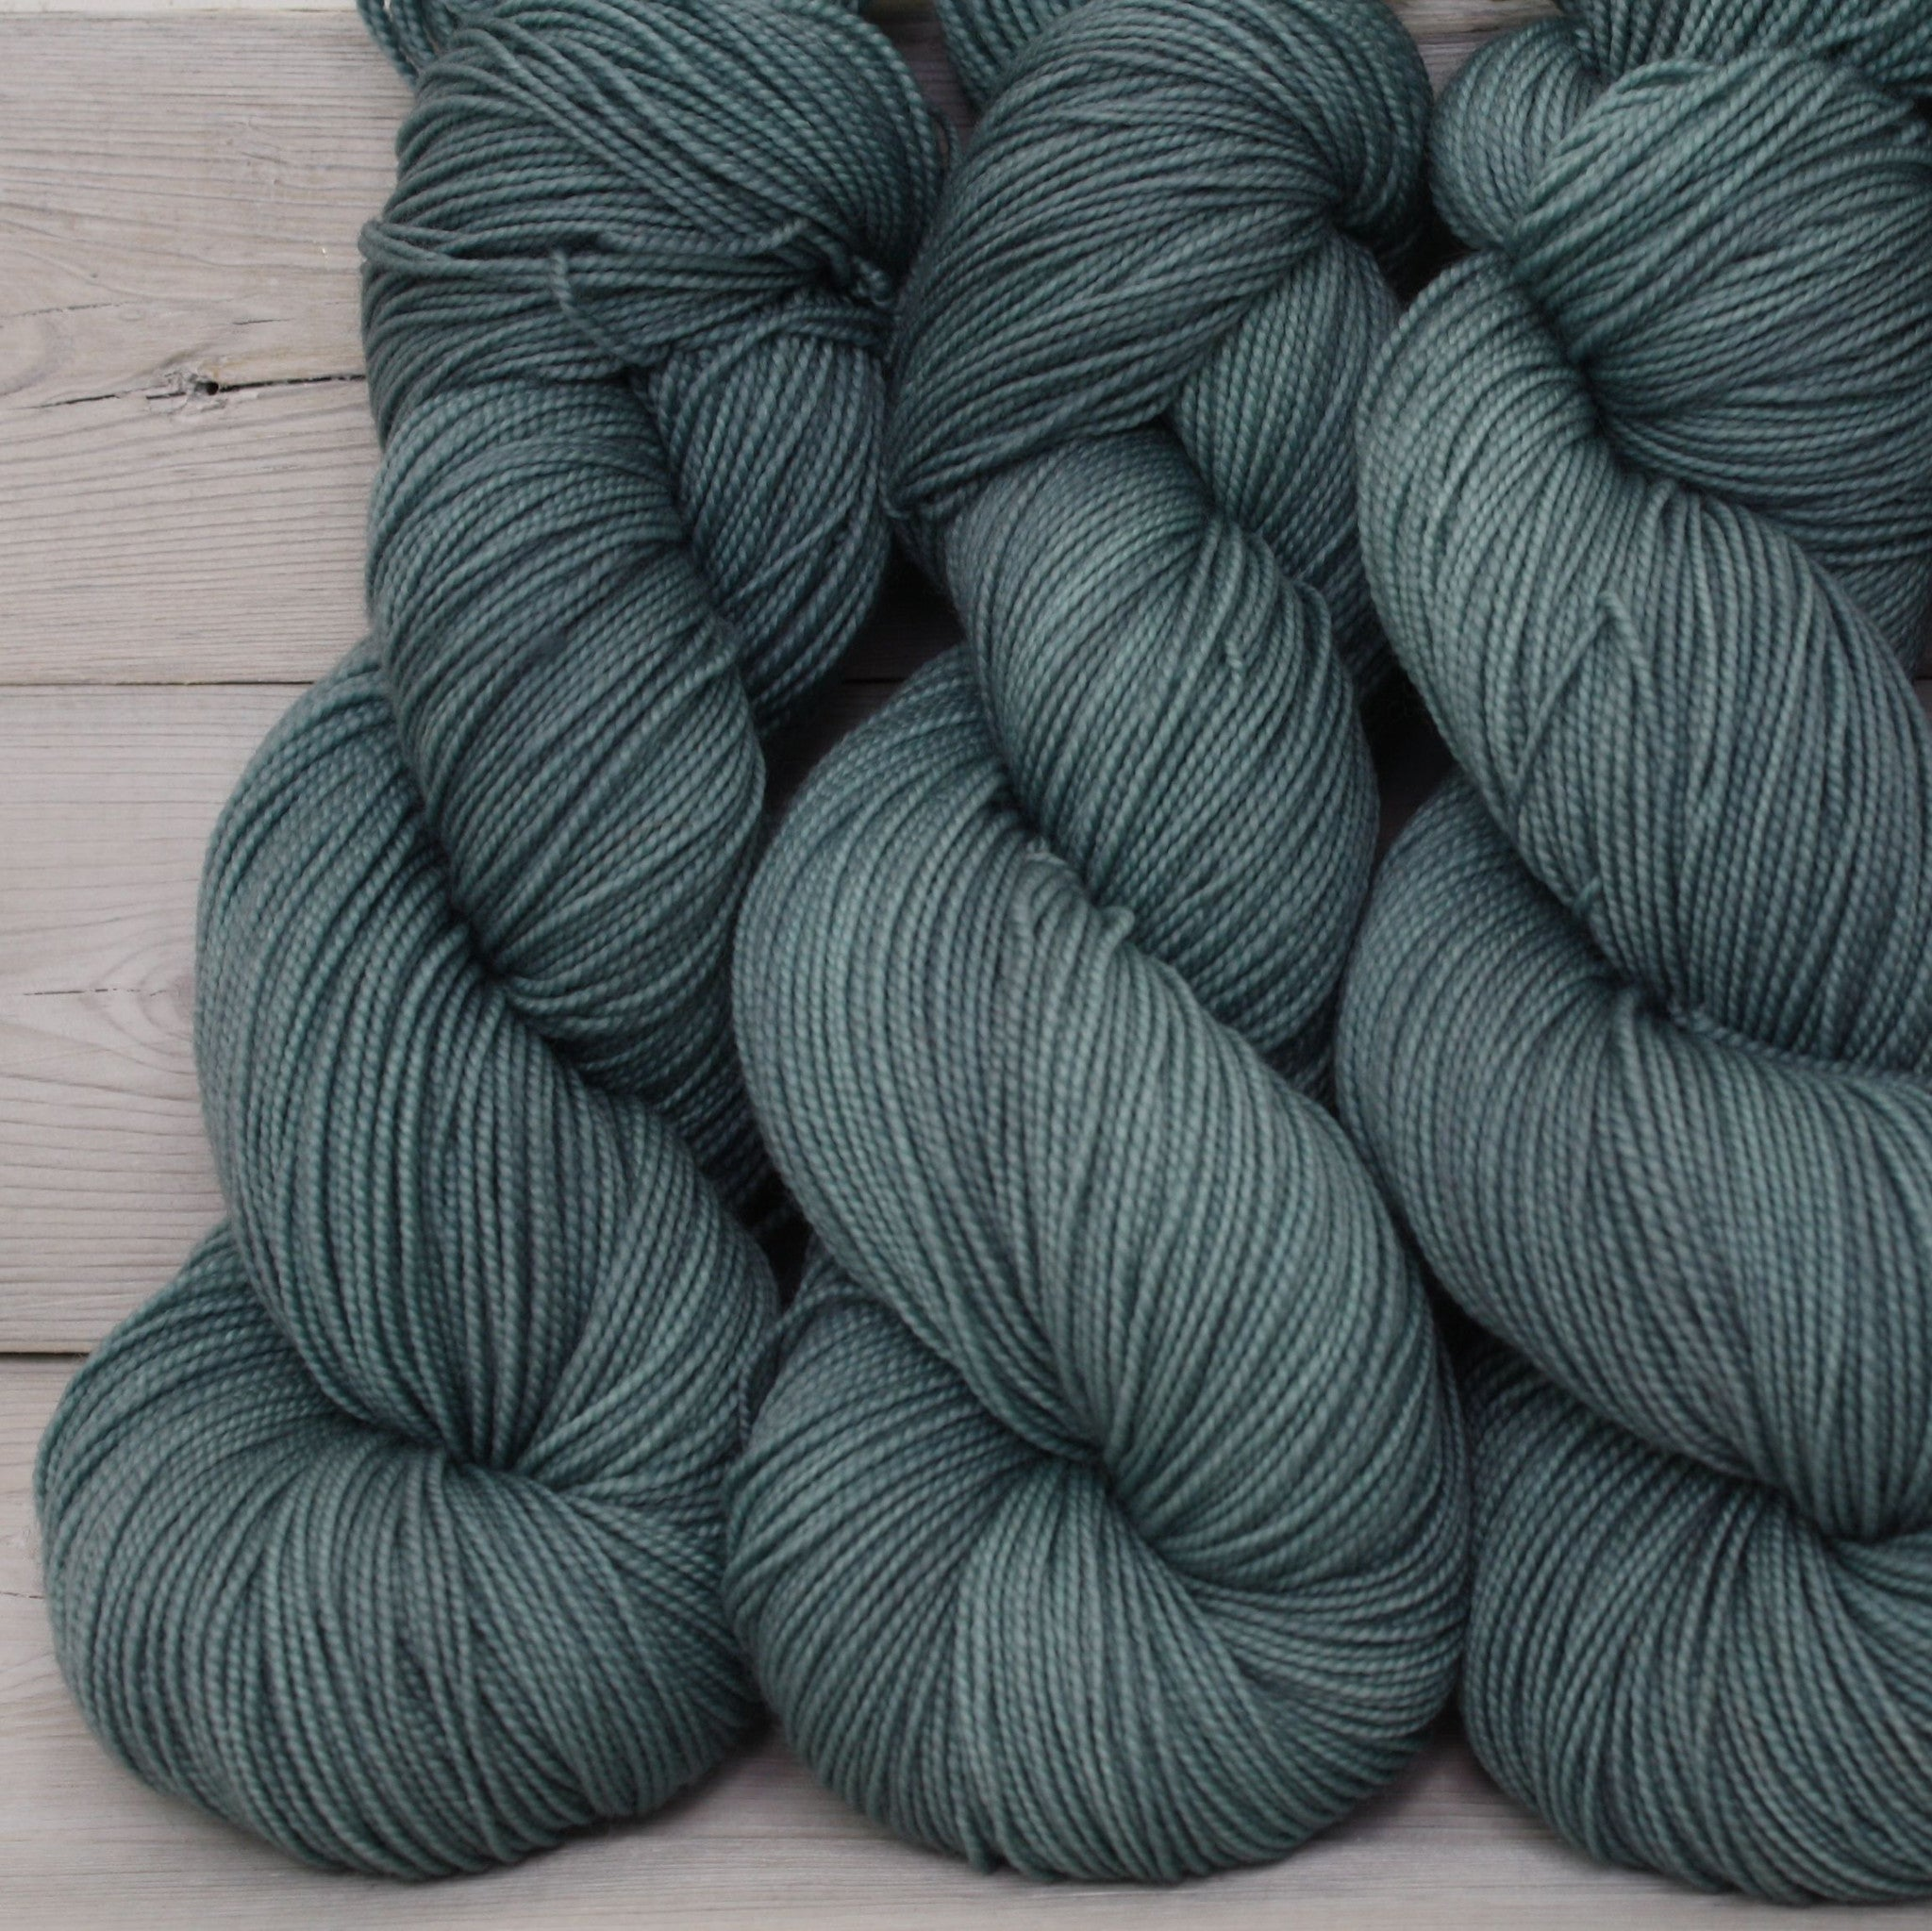 Celeste Yarn | Colorway: Harbor | Overstock